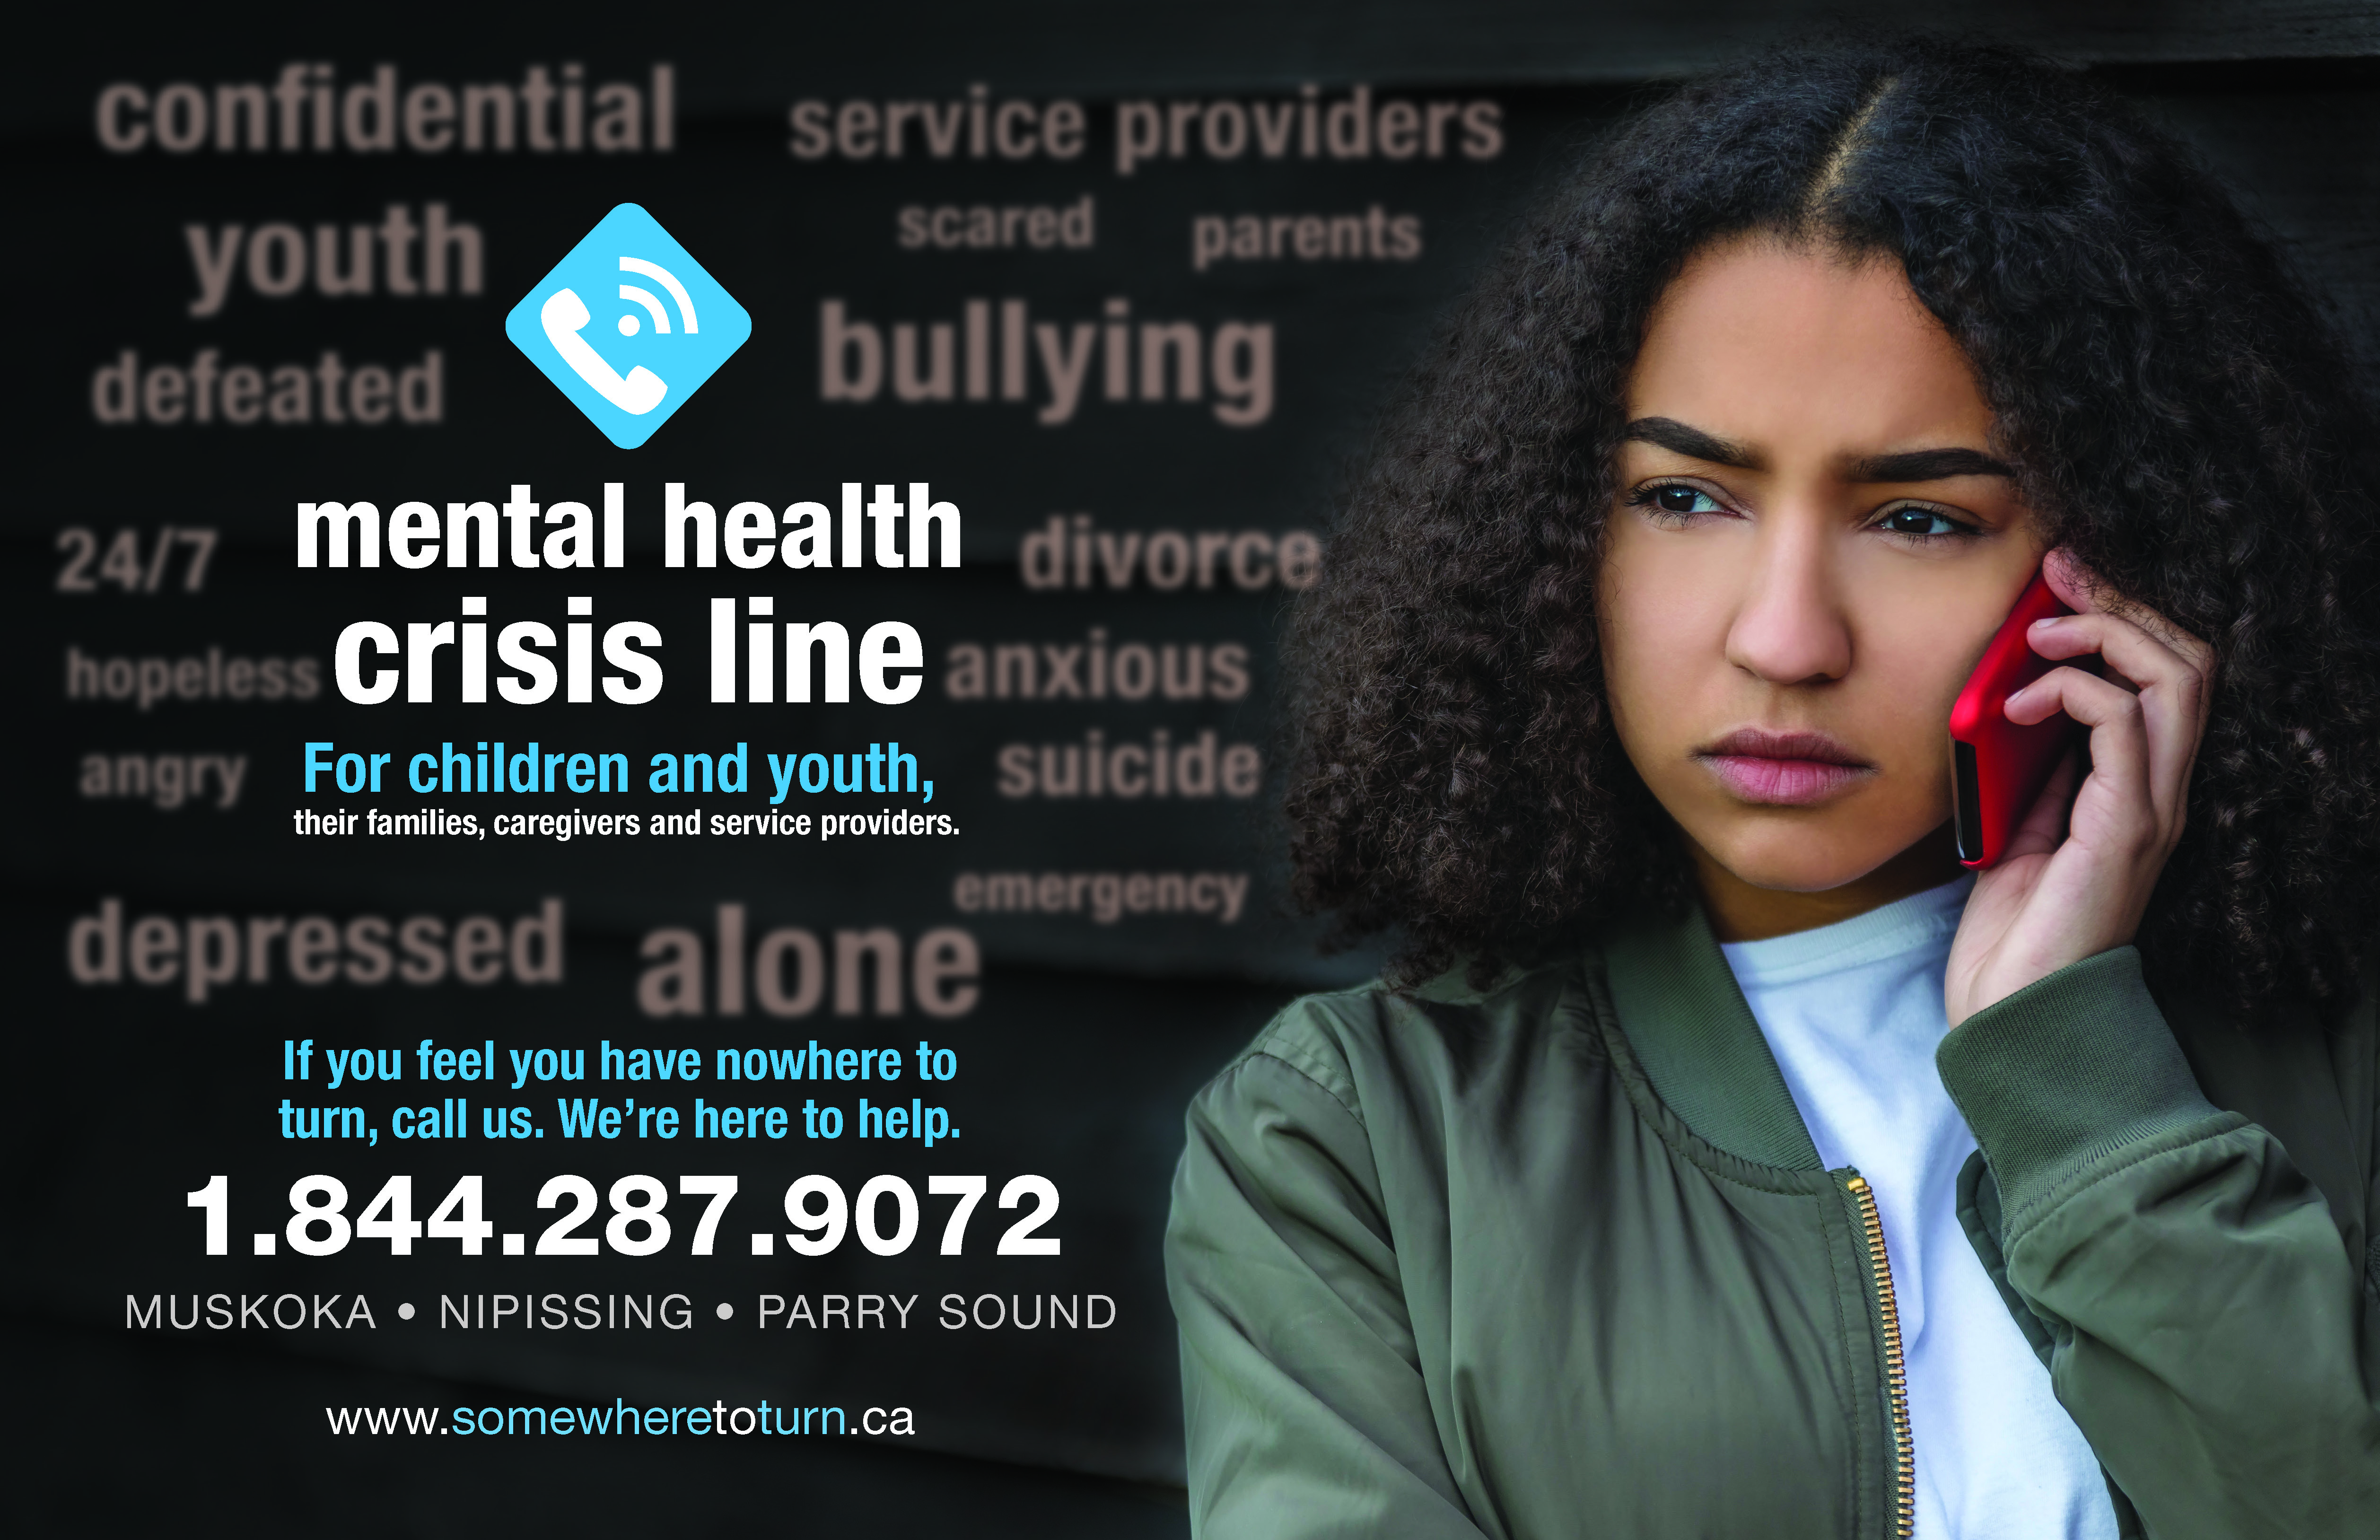 24/7 mental health crisis line for children and youth launches